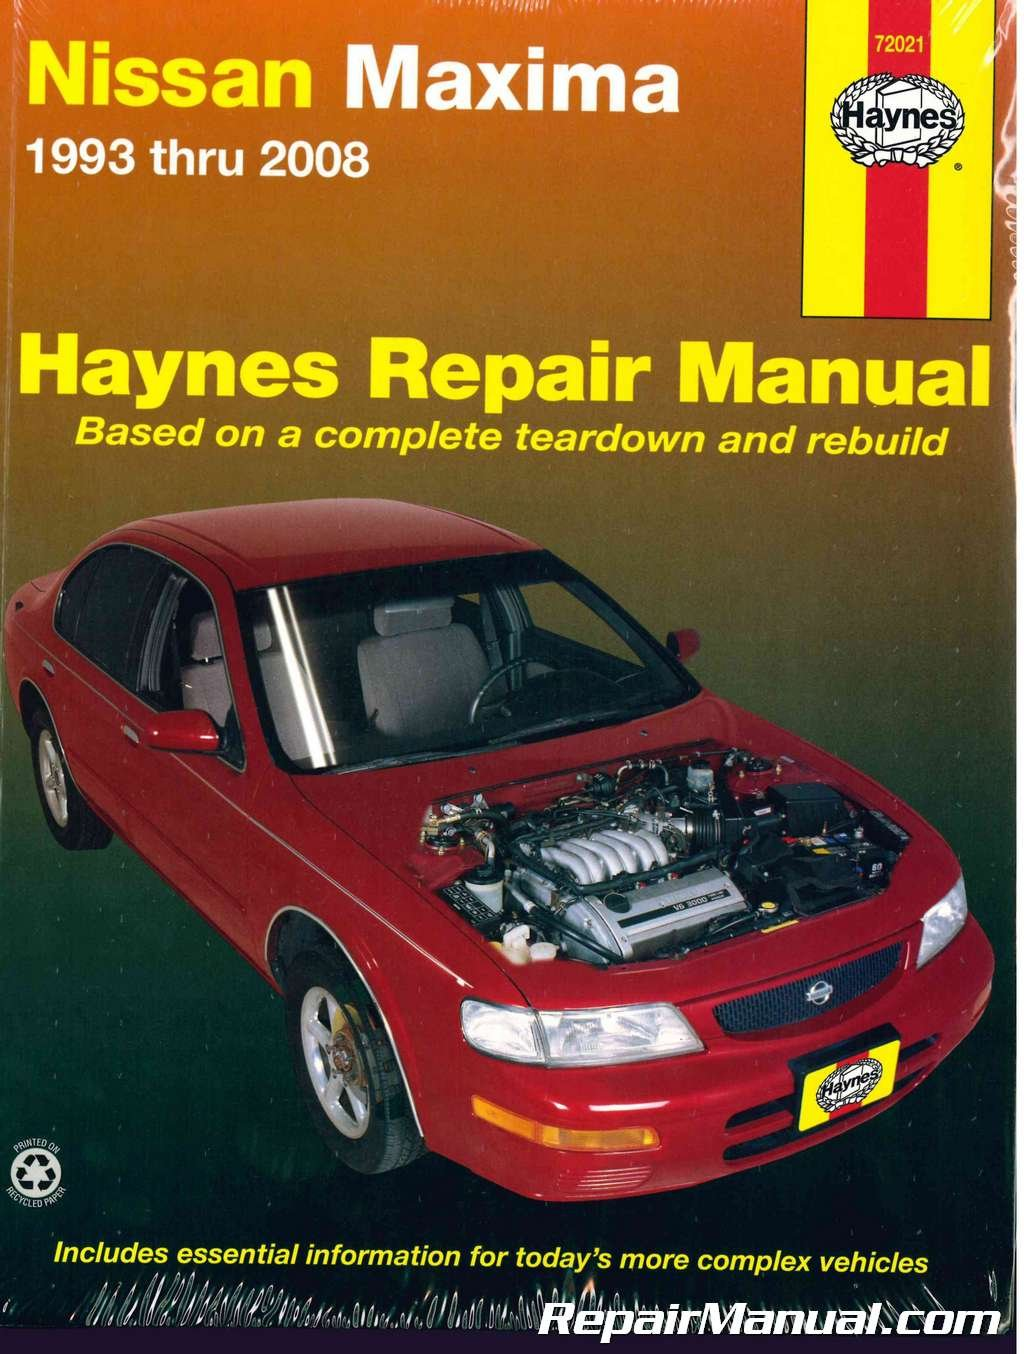 H72021 Nissan Maxima 1993-2008 Haynes Auto Repair Manual: Manufacturer:  Amazon.com: Books